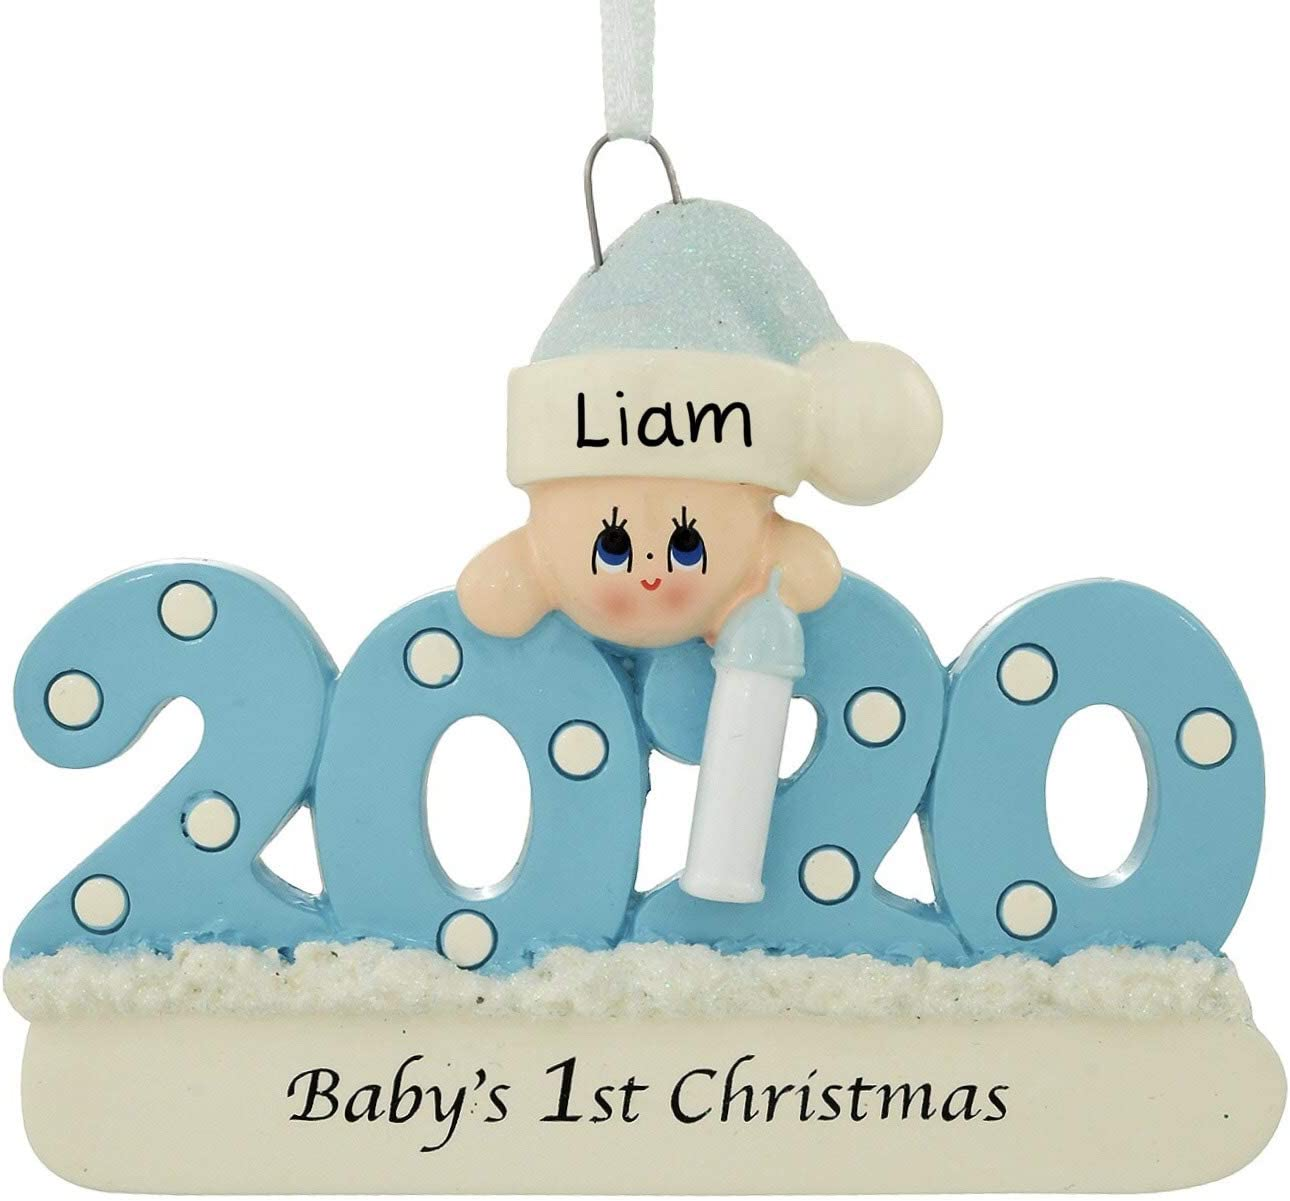 2020 Baby's 1st Christmas Ornament Personalized (Blue (Boy))